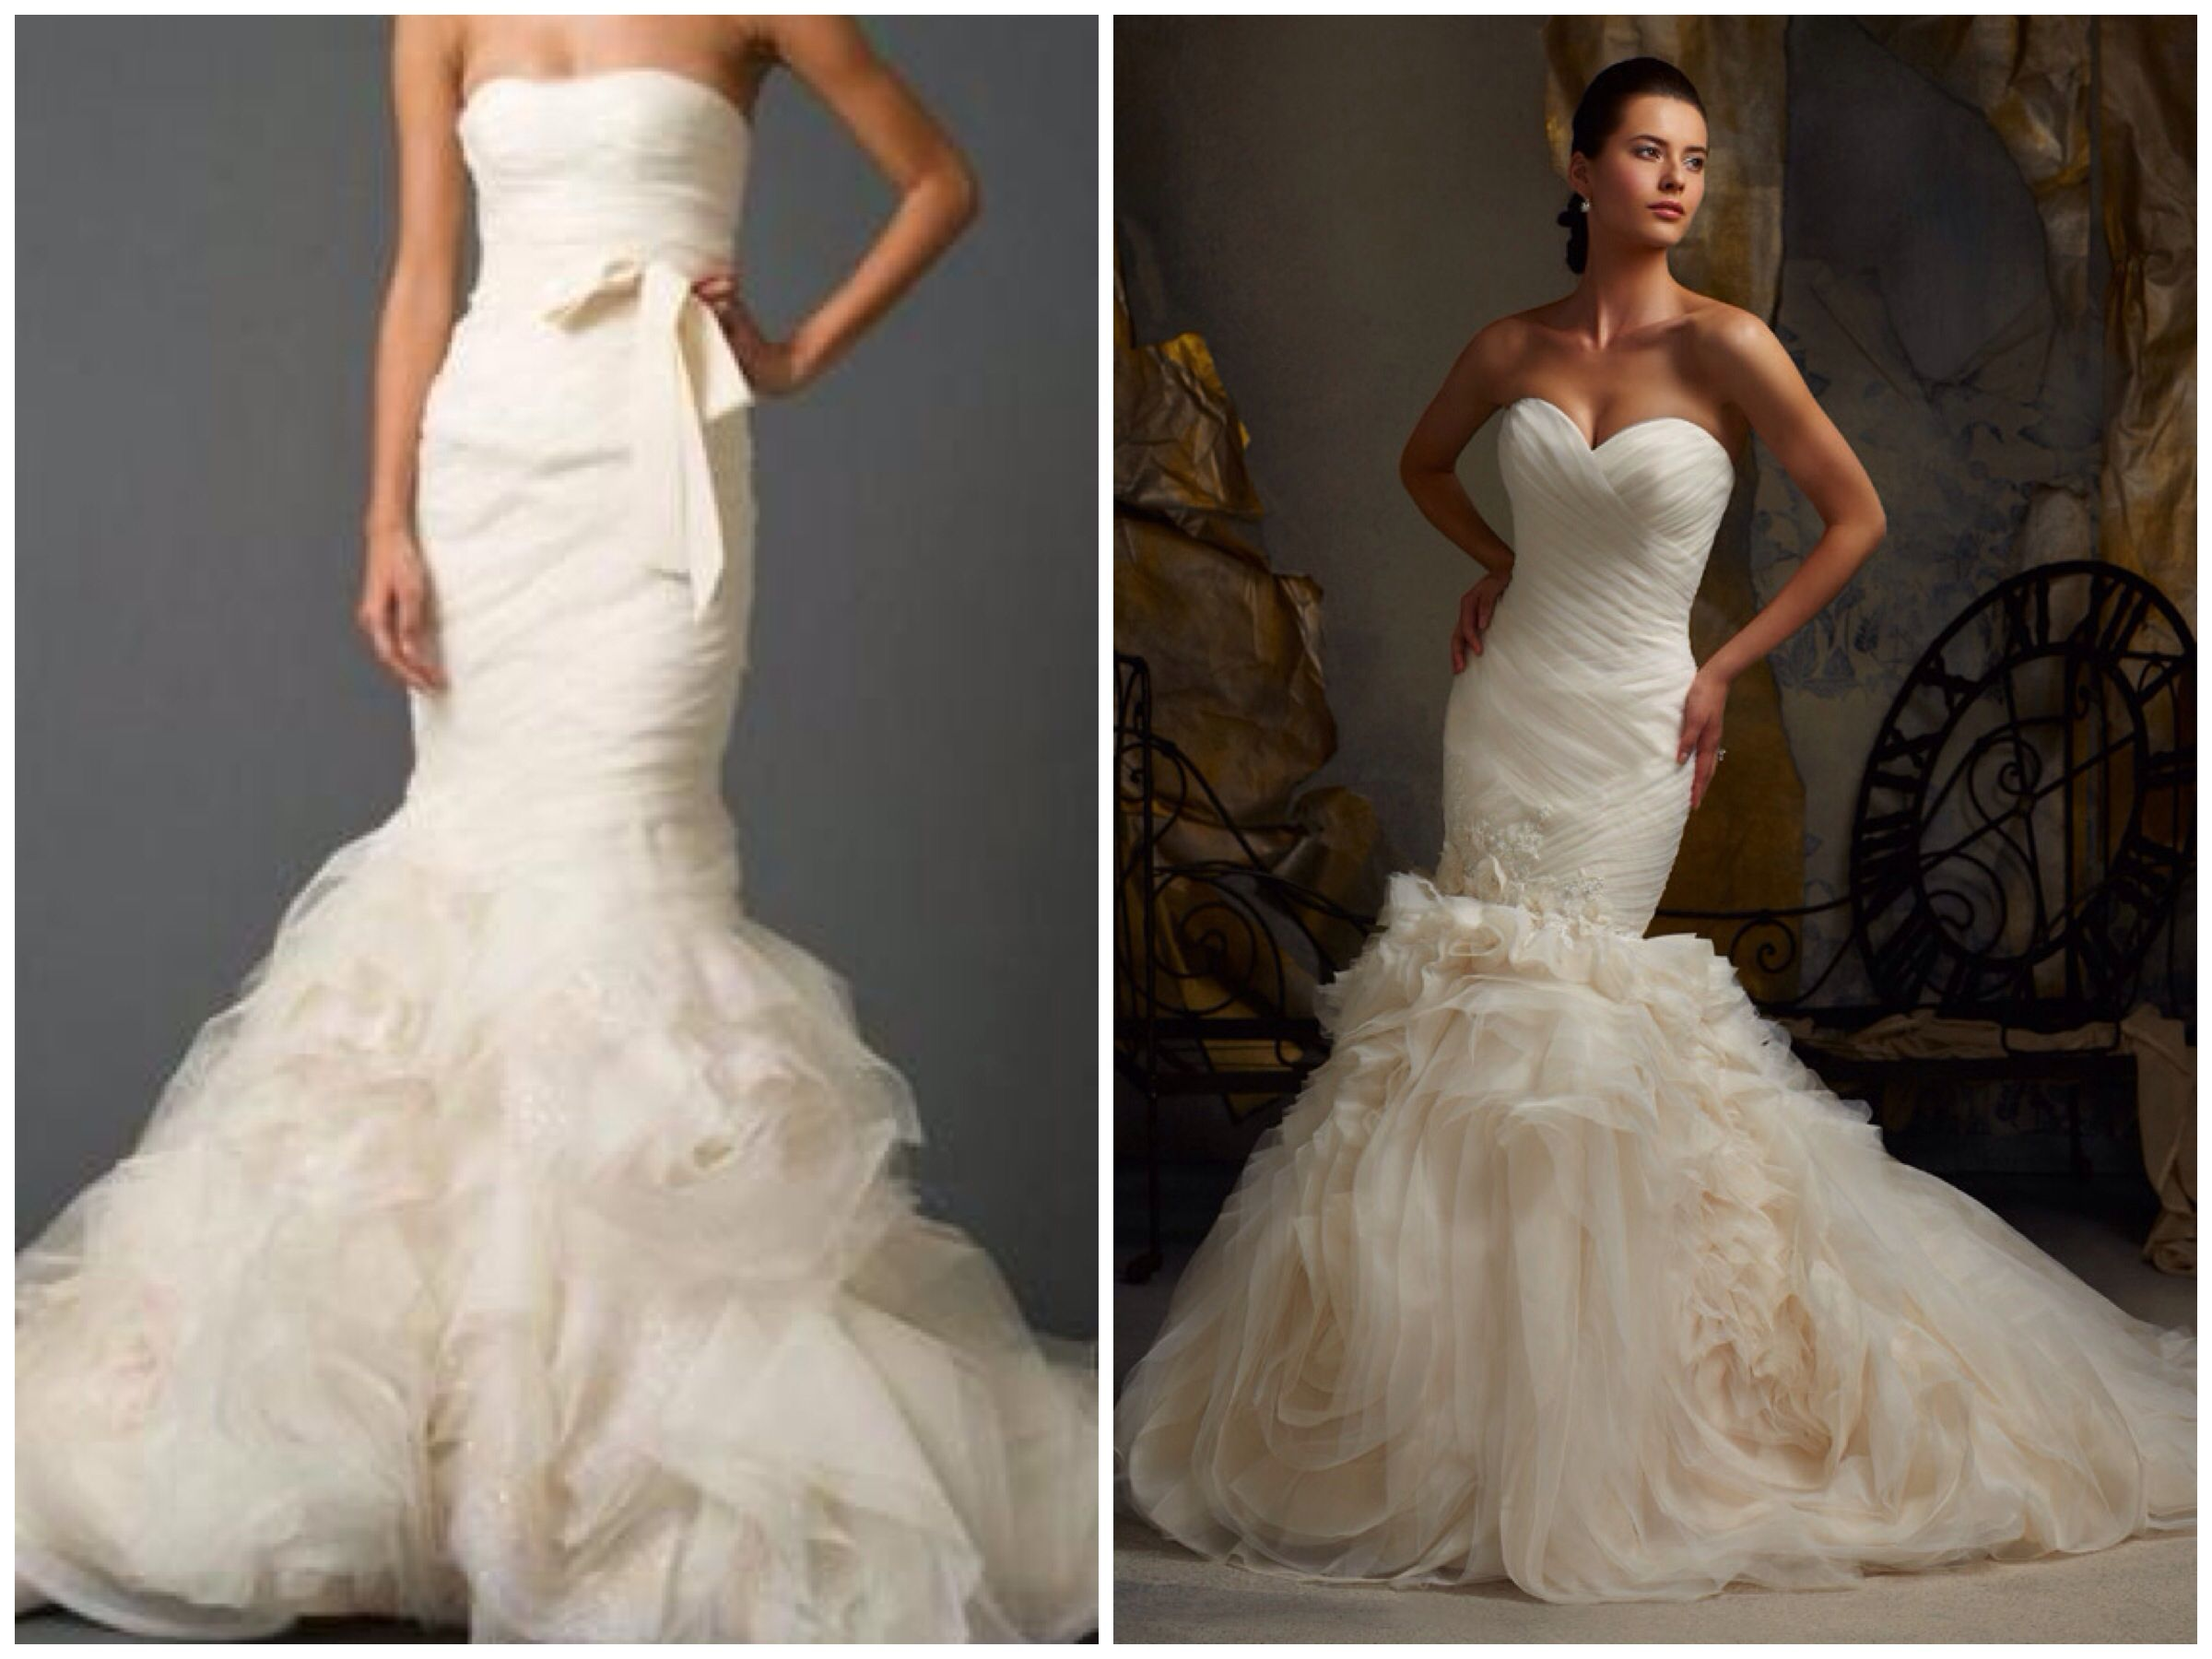 vera **** gemma wedding dress left vs mori lee blu 5104 wedding